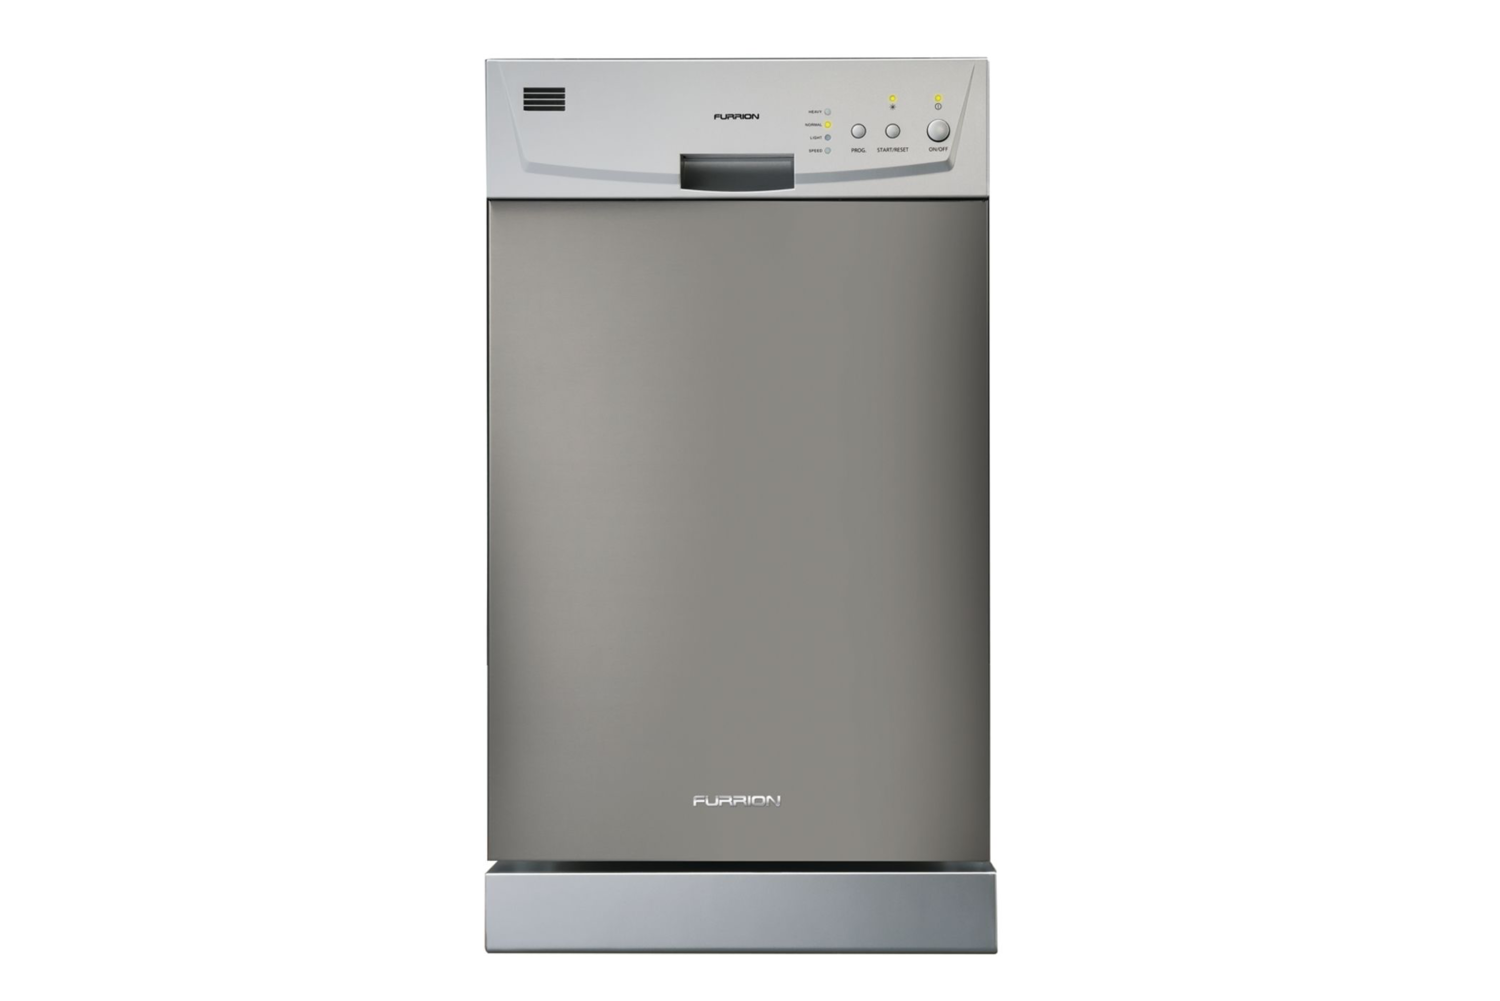 Furrion 18 Inch Built In Dishwasher Dishwashers Tiny Life Supply